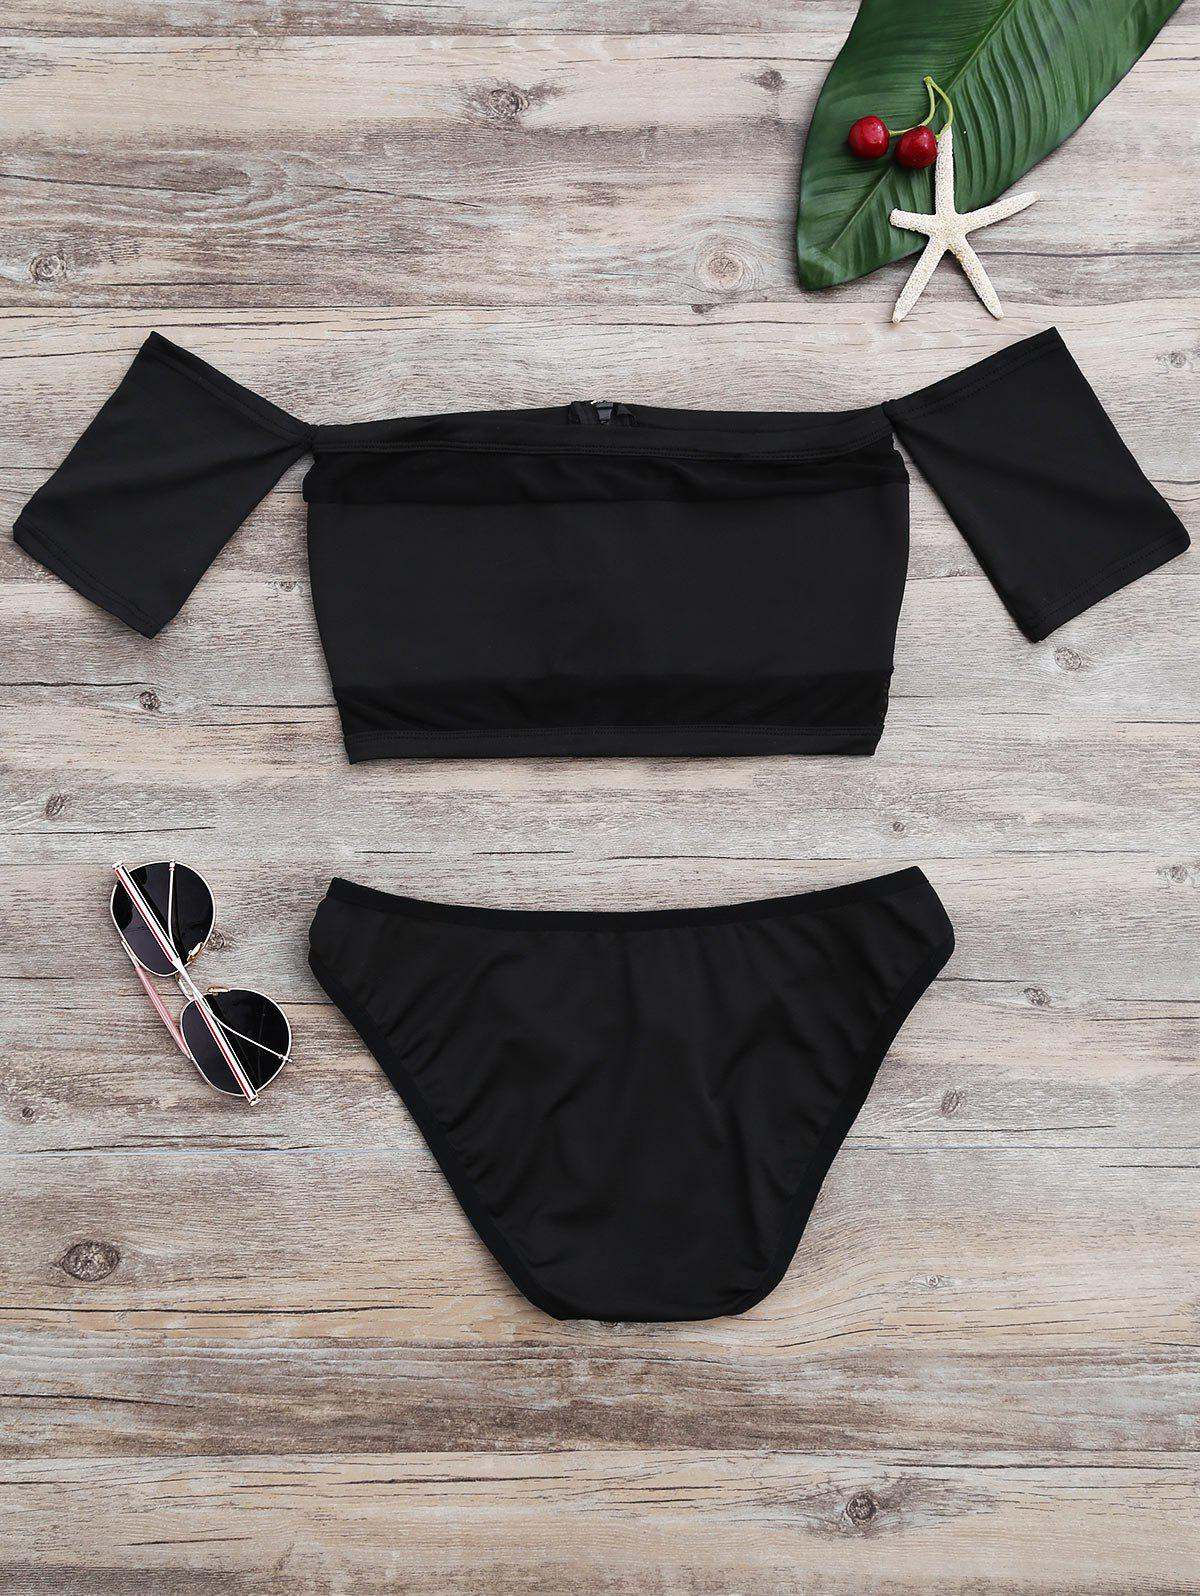 New Off The Shoulder High Cut Mesh Bikini Set